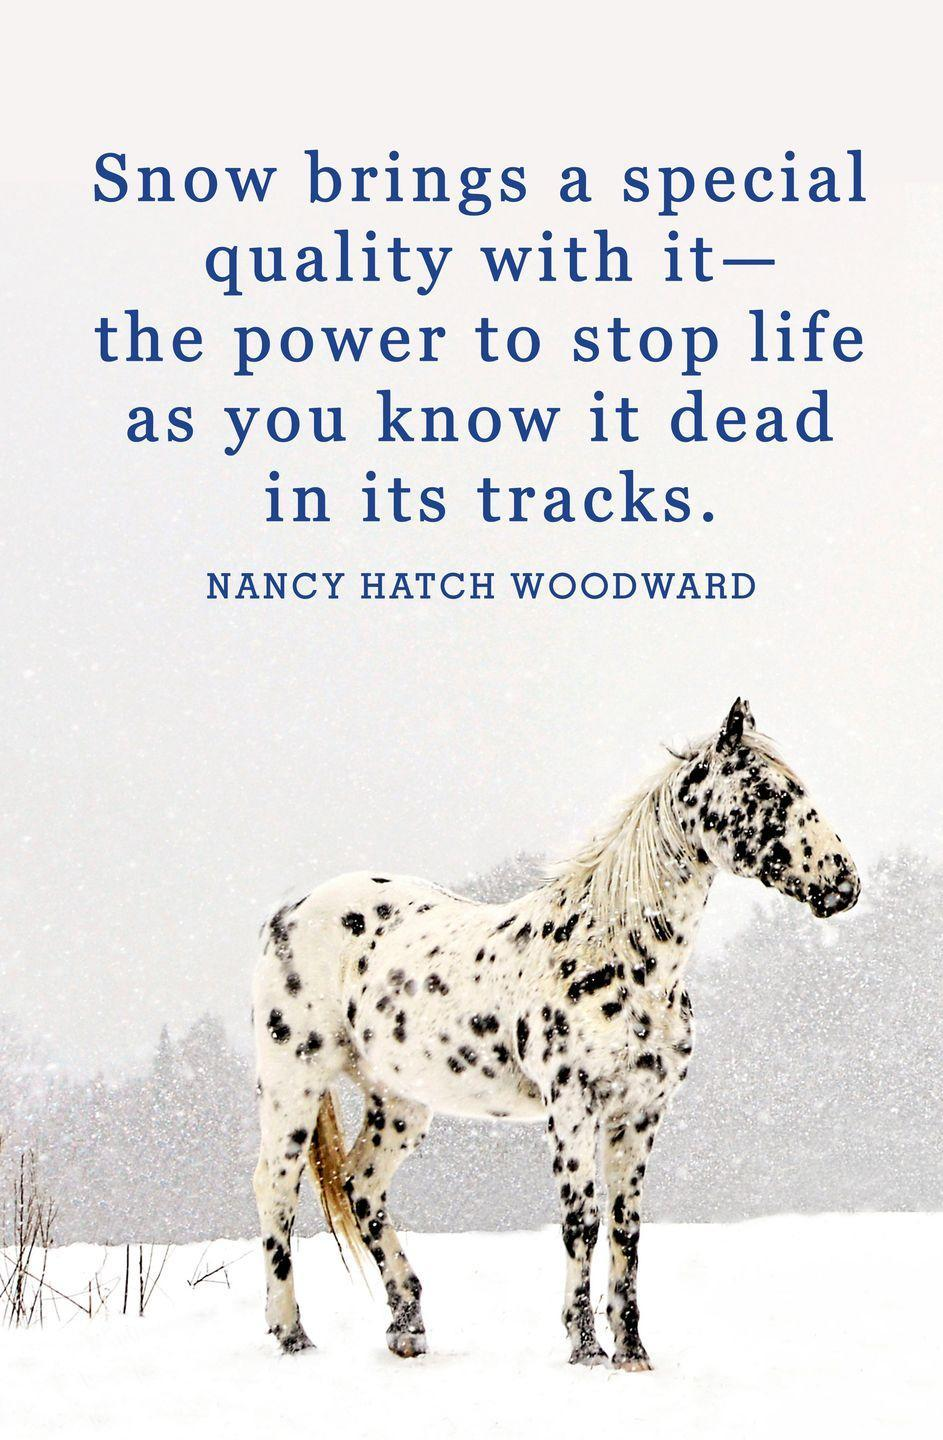 "<p>""Snow brings a special quality with it—the power to stop life as you know it dead in its tracks.""</p>"